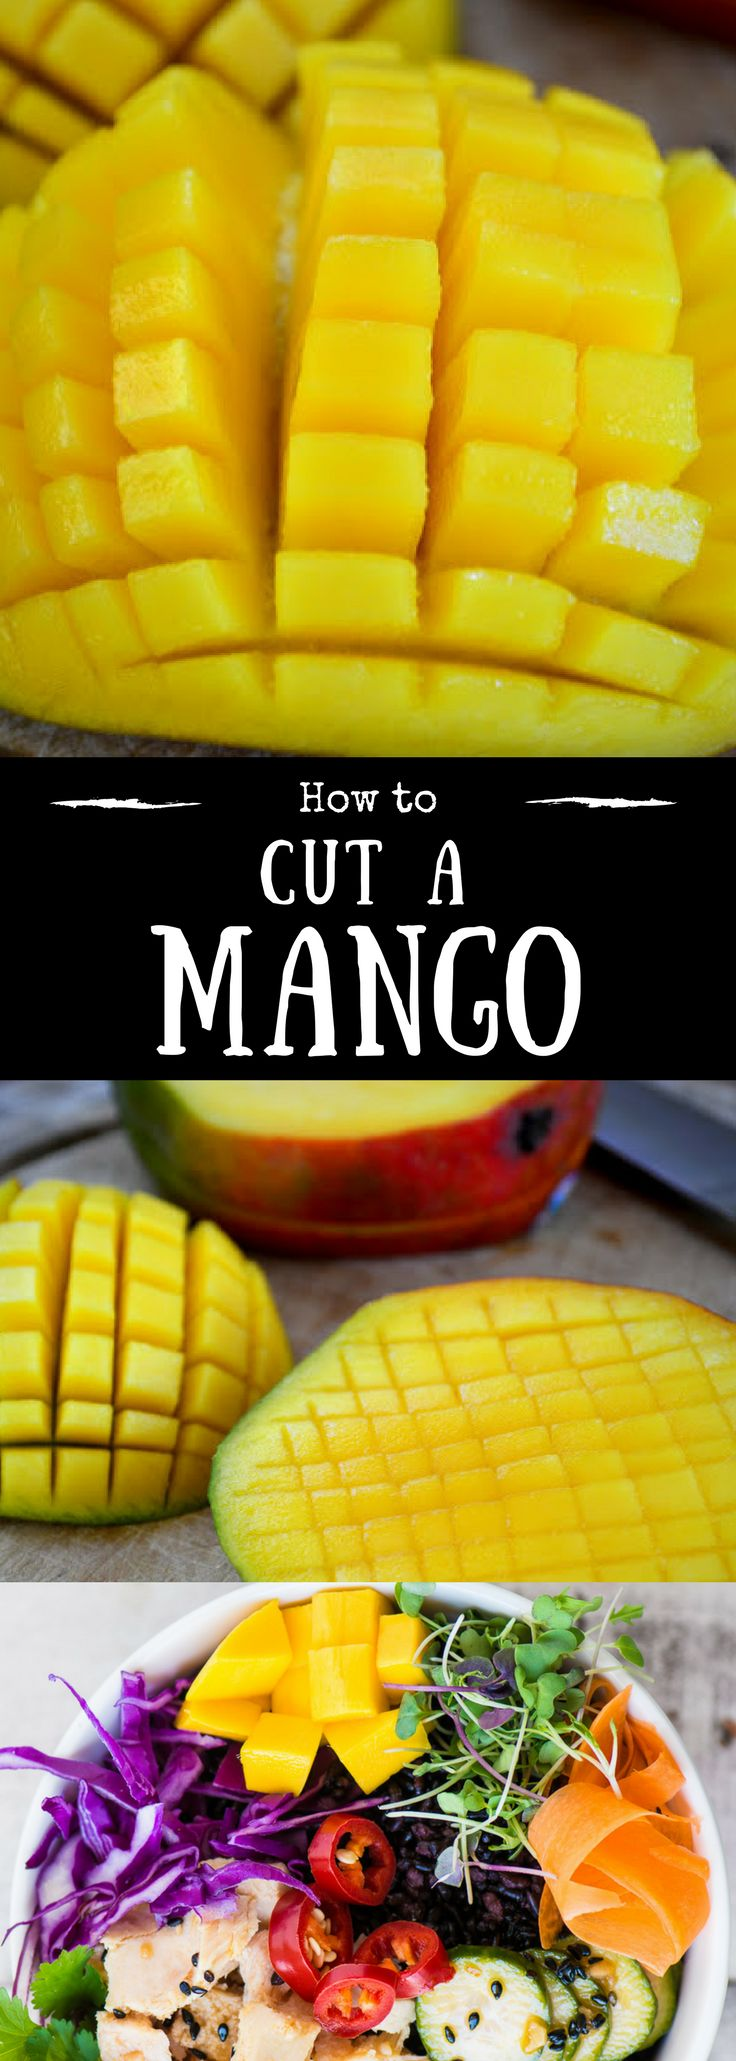 How to cut a mango ~ mangoes are one of the most luxuriously delicious fruits, but if you've never dealt with one, they can be perplexing. I'll show you how to cut it into perfect little chunks so you can enjoy it as is, or in a recipe. | DIY | kitchen hack | Fruit | Healthy | Tropical |